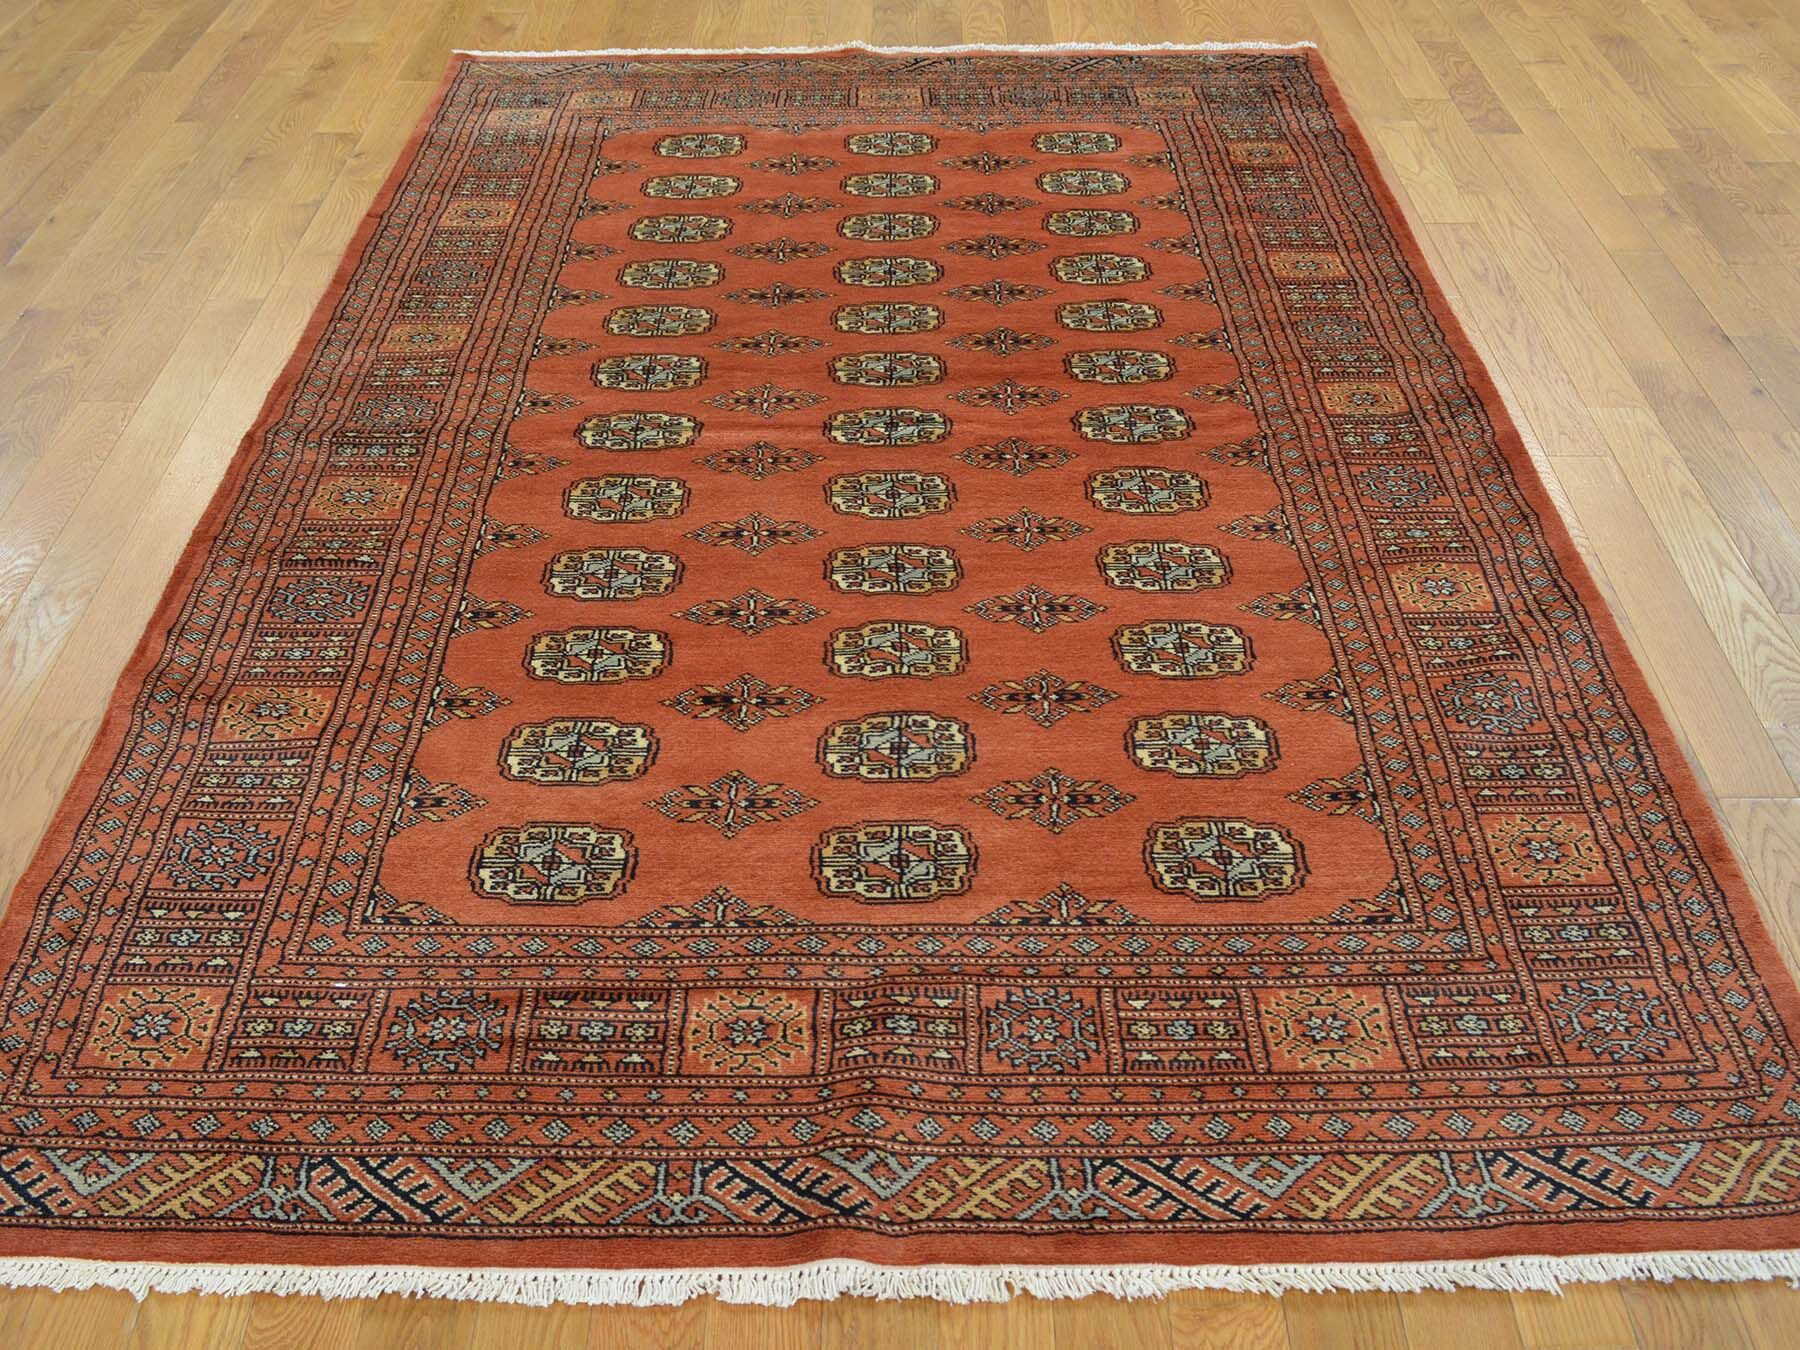 One-of-a-Kind Bluffview Rust Bokara Elephant Feet Design Hand-Knotted Red Wool Area Rug